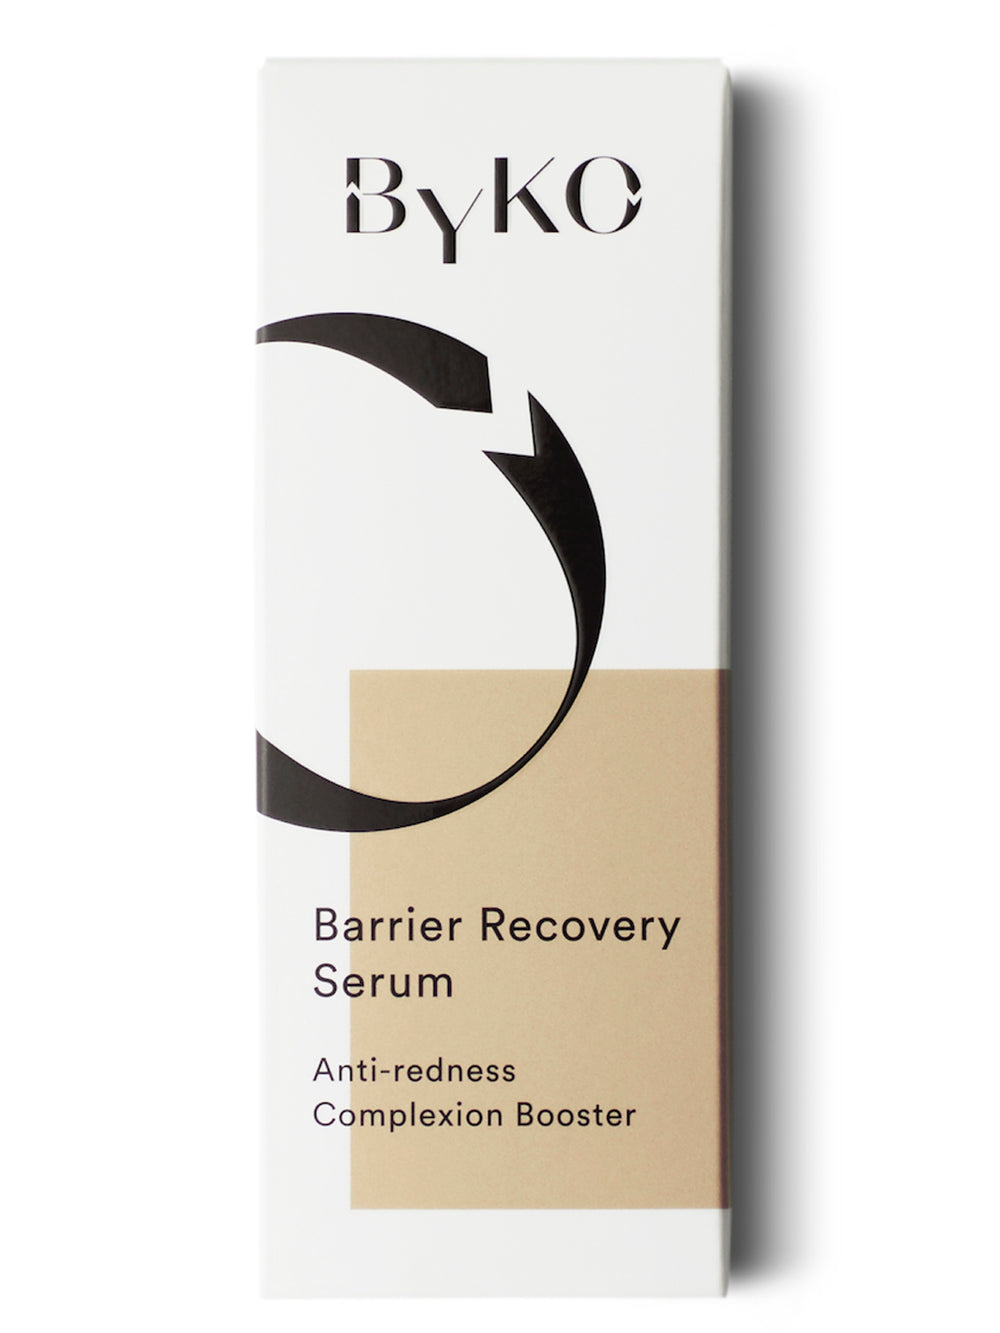 Barrier Recovery Serum